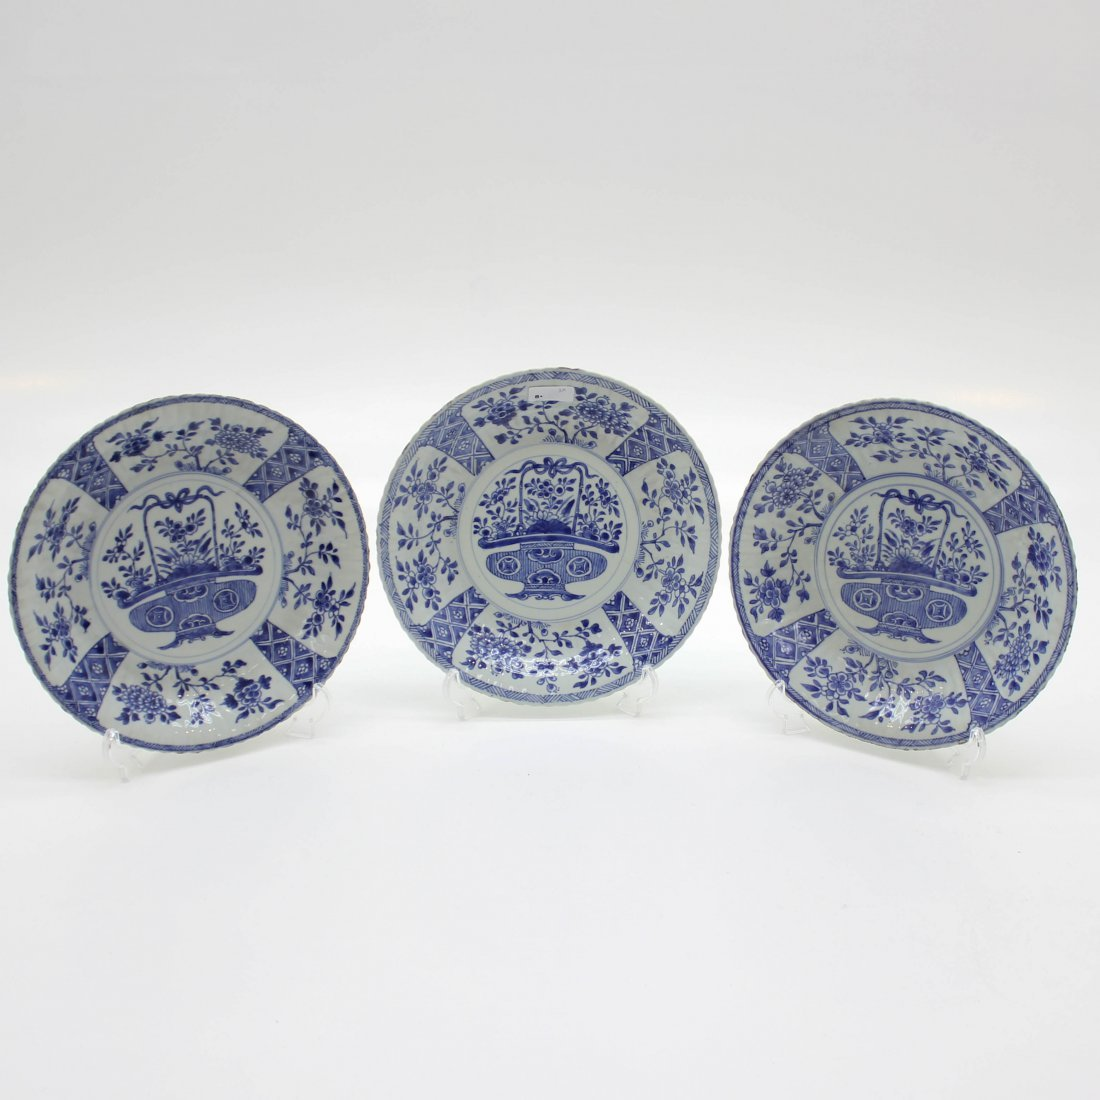 18th Century China Porcelain Plates